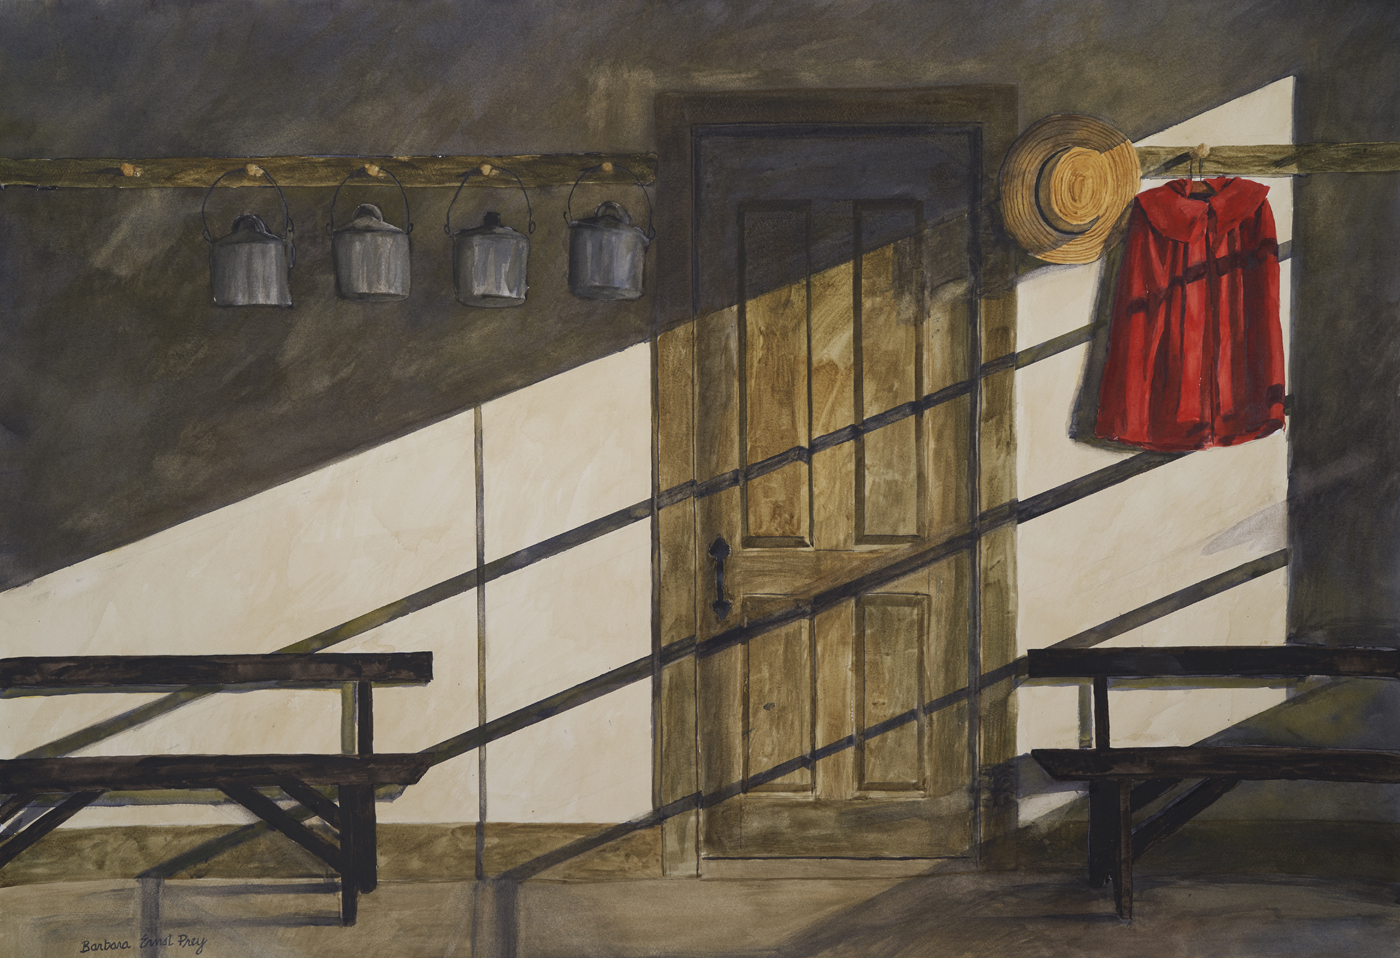 School Room Red Coat, 2019, Watercolor and drybrush on paper, 28 x 40 inches